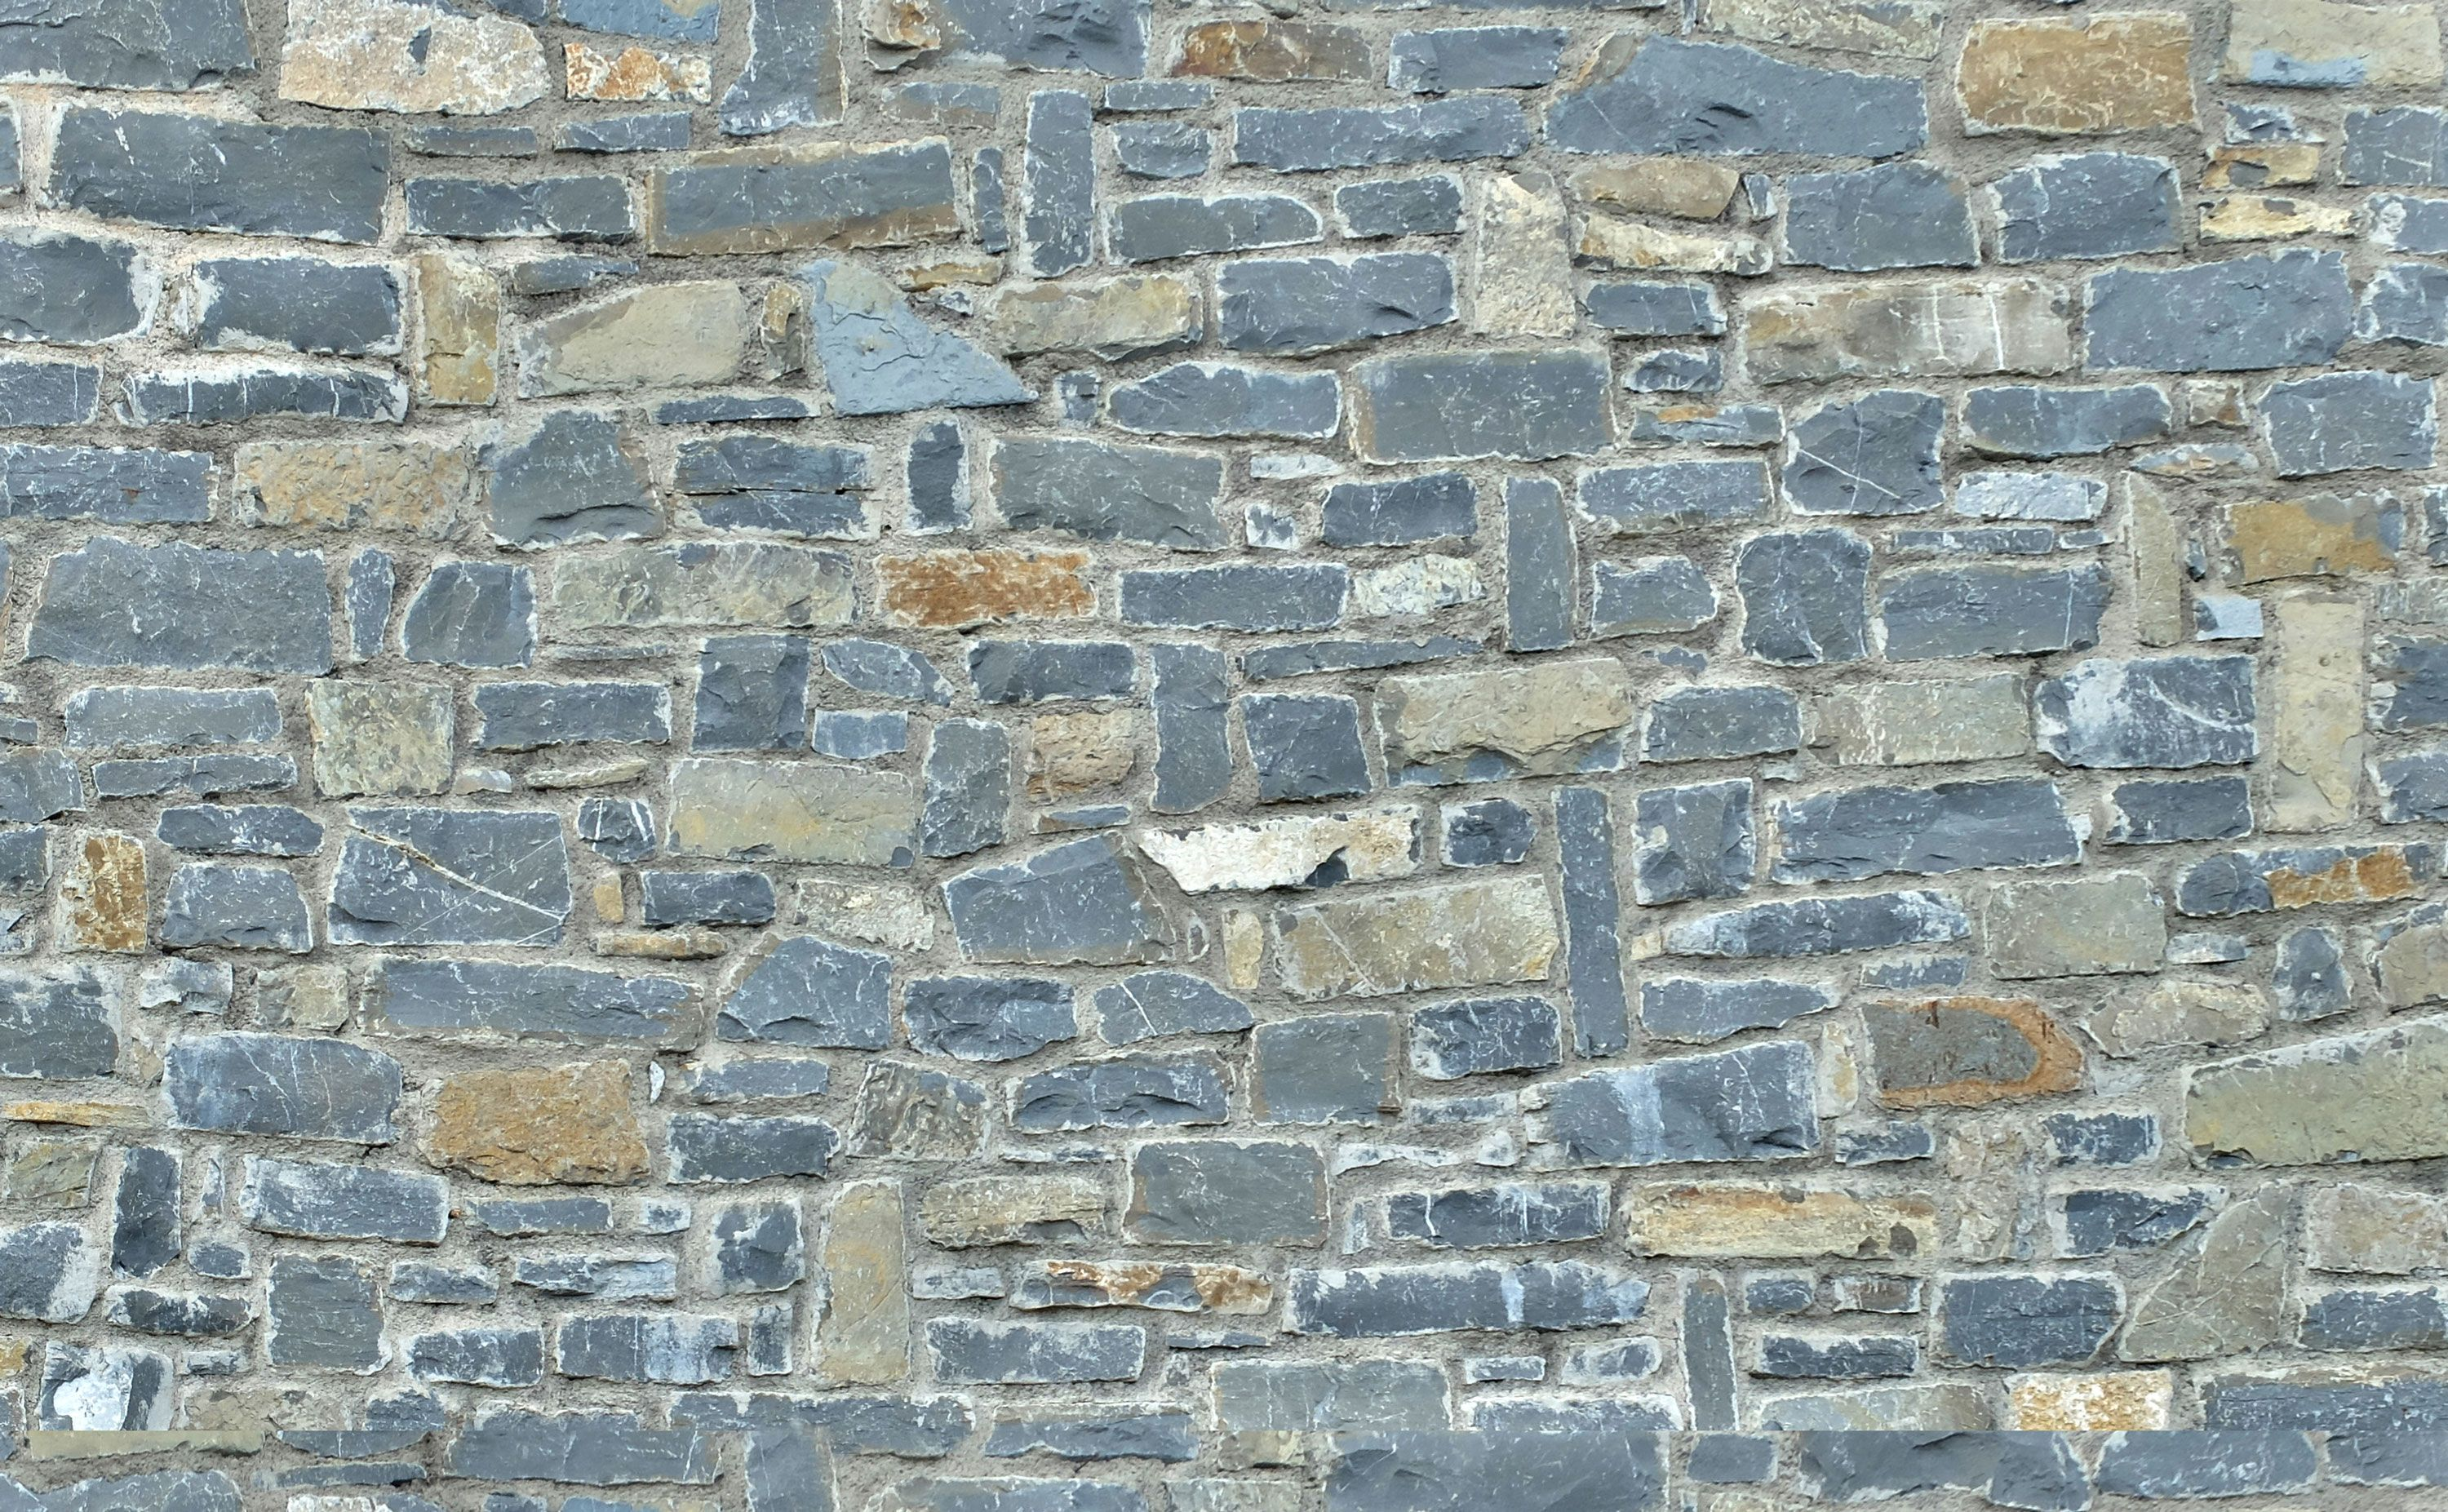 Stone Rubble Wall Seamless Texture Materials Textures